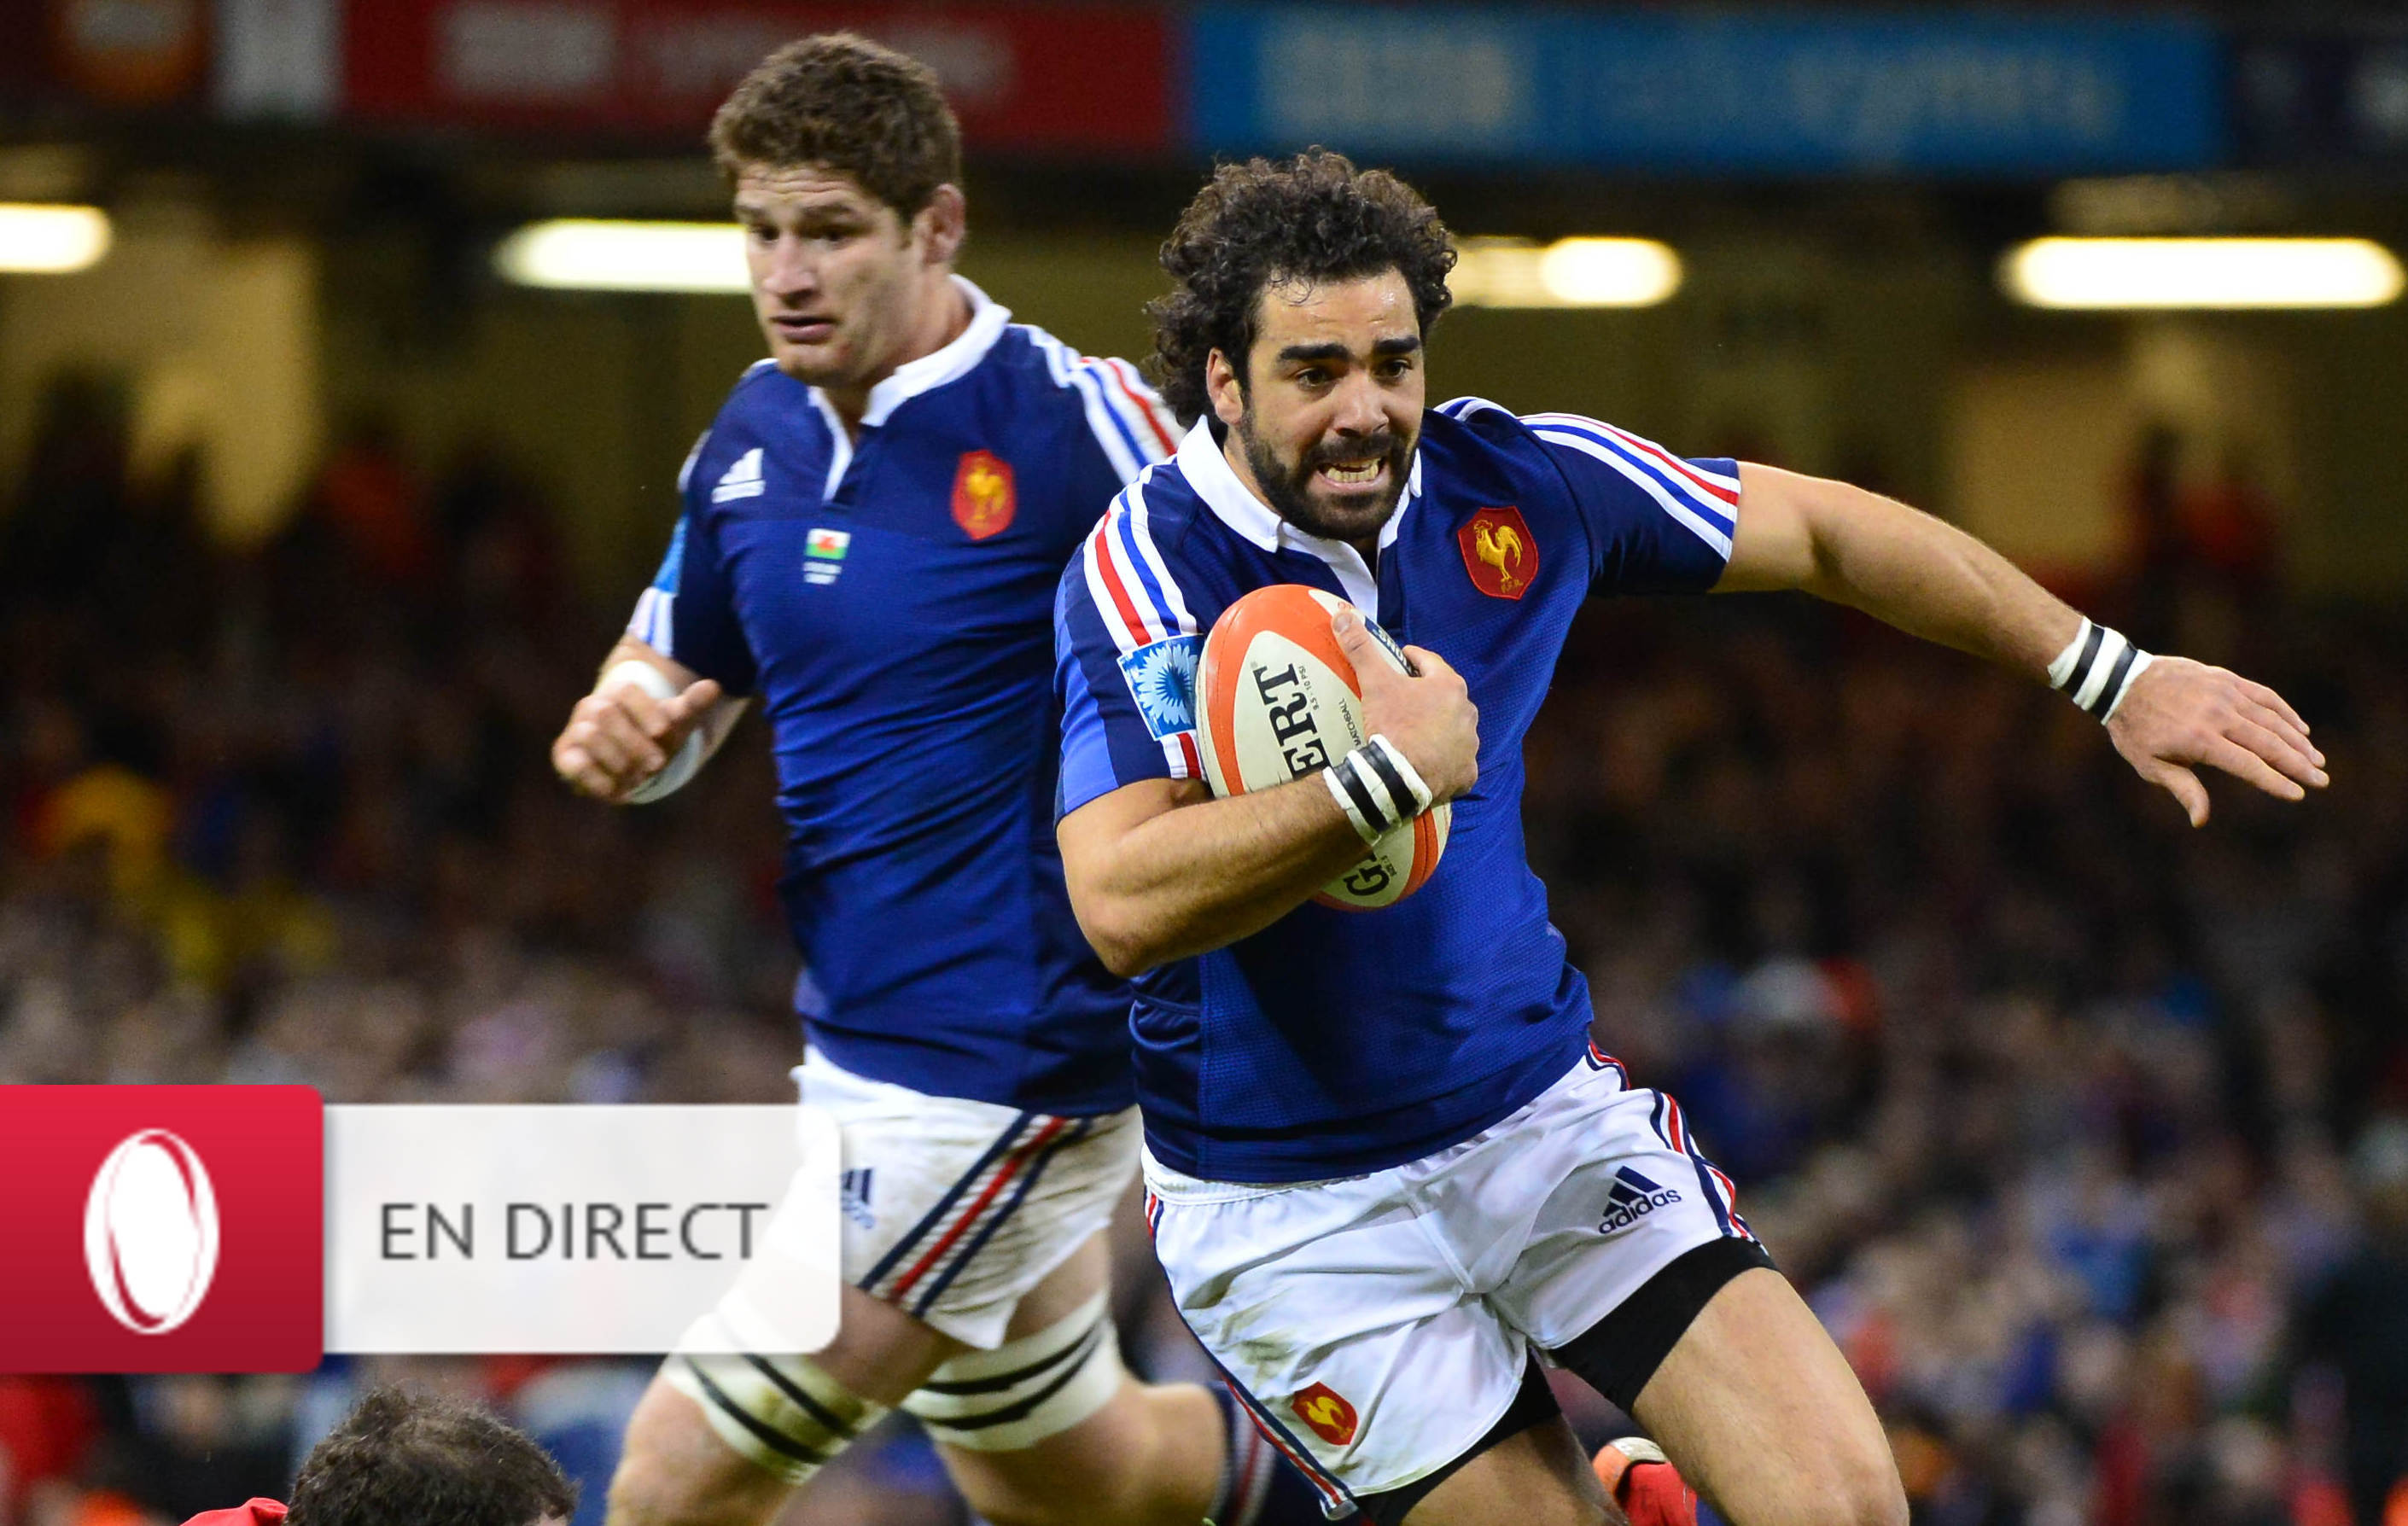 Rugby - XV de France - Ecosse-France en DIRECT